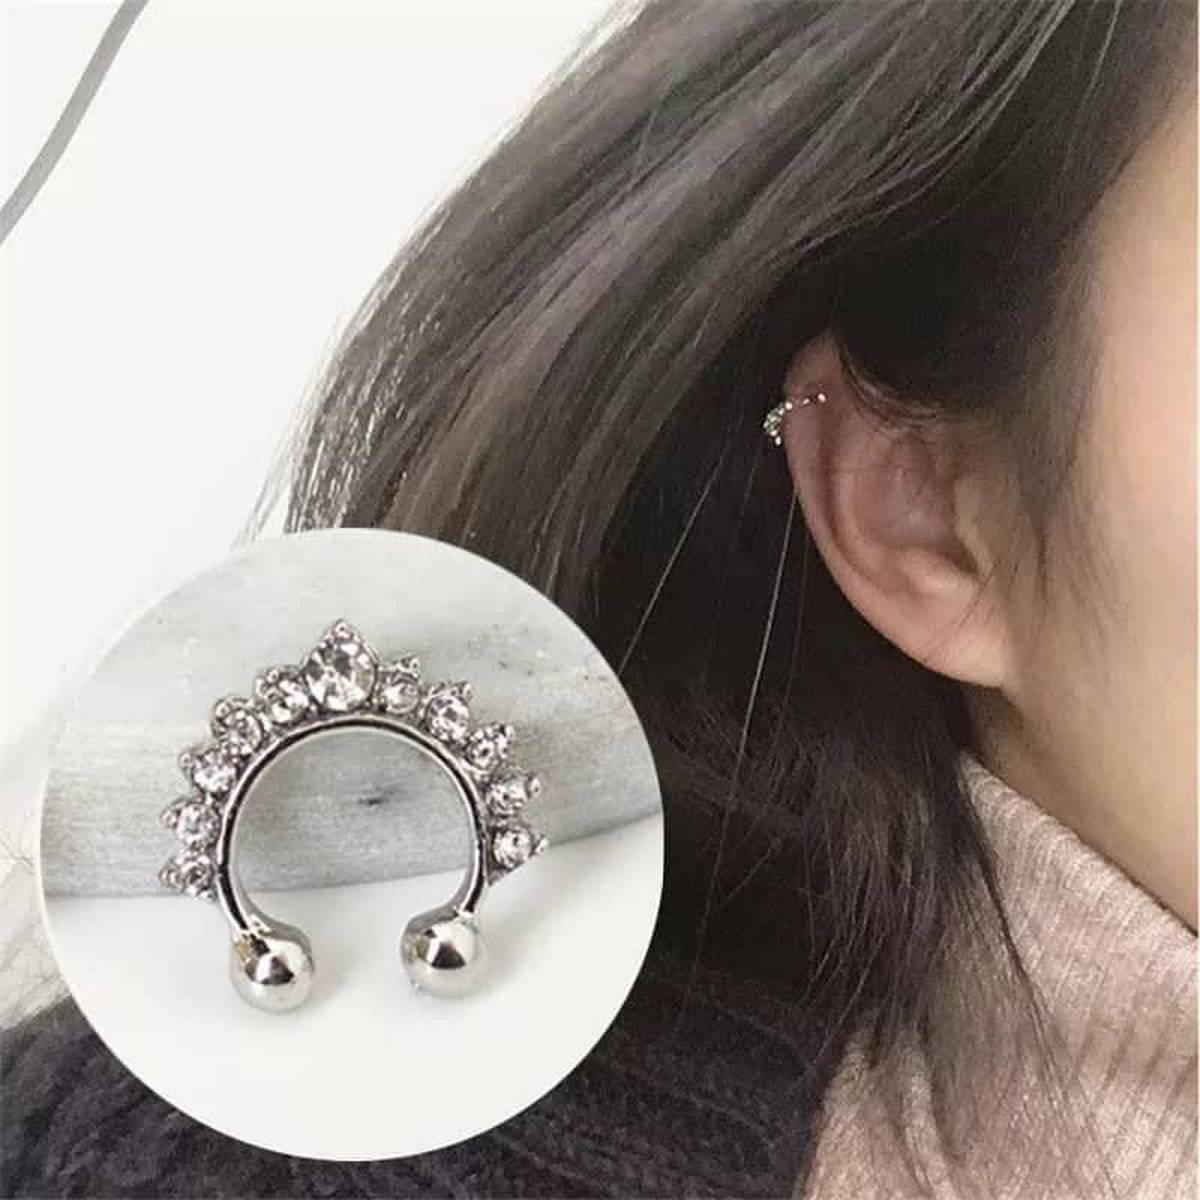 Women Fashion Crystal Fake Hoop Ear Cuff Nose Ring Punk Nose Clip Girl Earrings Body Piercing Jewelry for Party Earcuff - 01 Pc